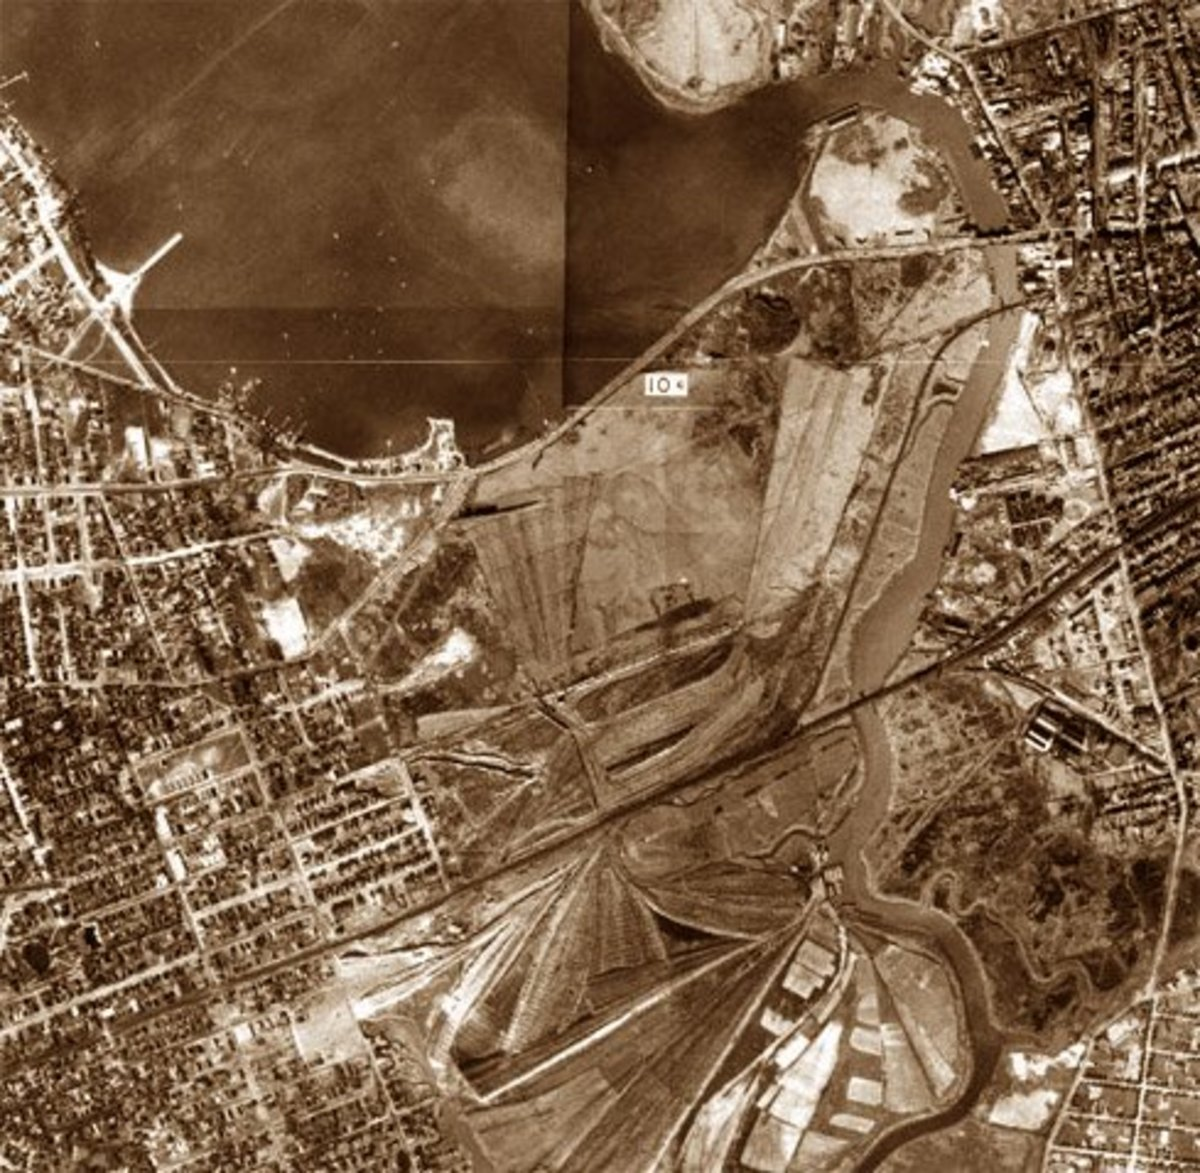 The Flushing River valley.  The river is to the right, the vast Corona Ash Dumps to the left. This early aerial photo was taken around 1915, prior to the building of Roosevelt Ave